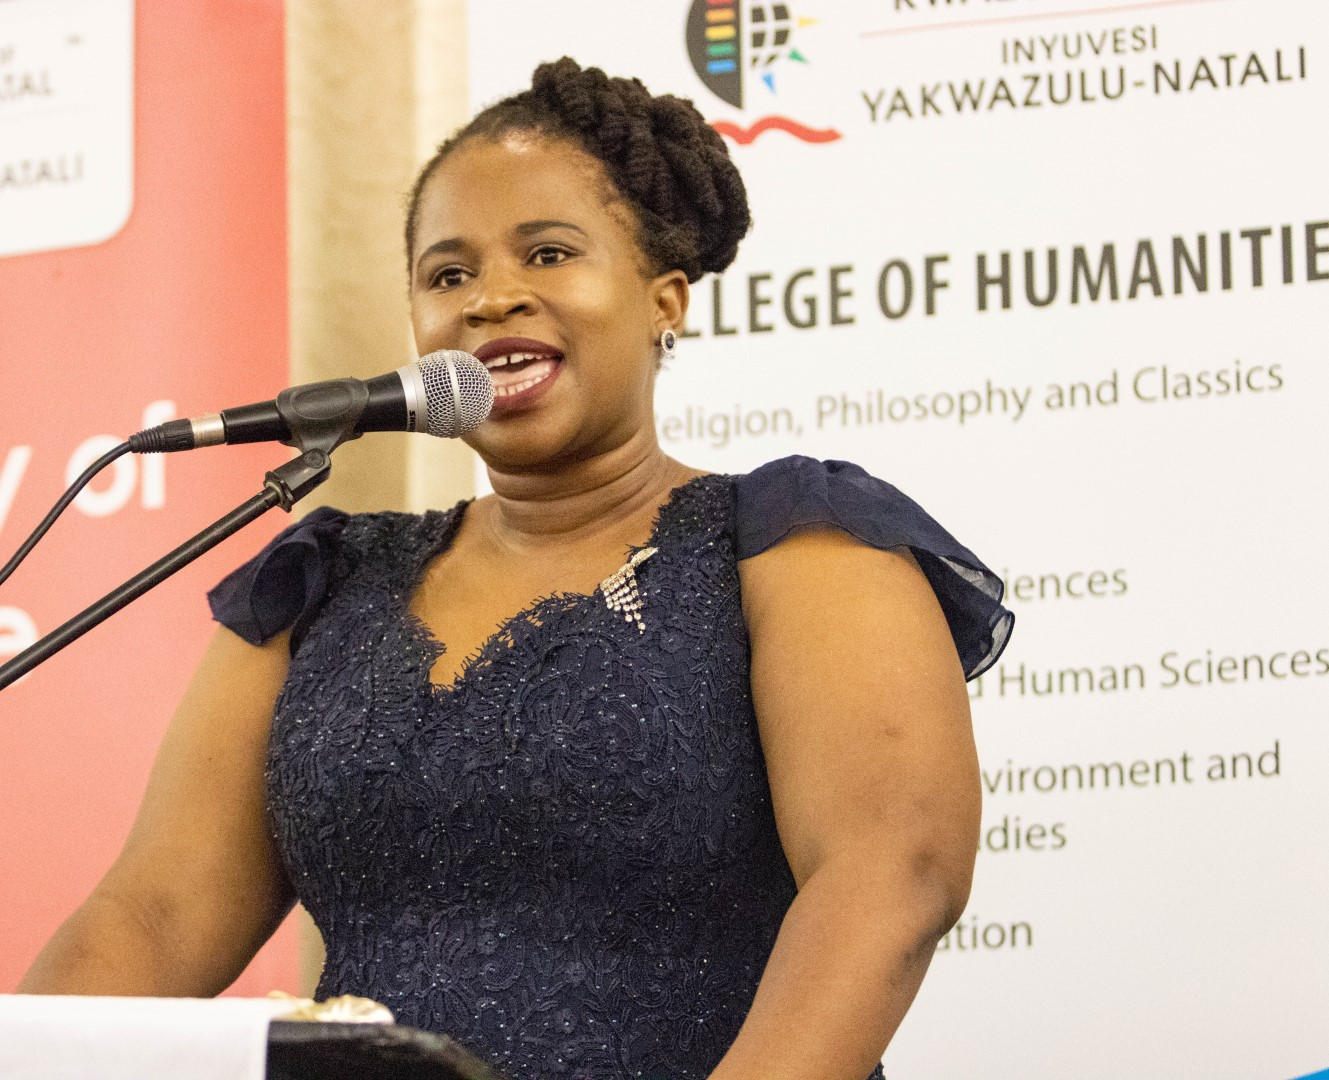 Social Work lecturer Dr Nolwazi Ngcobo talks about her PhD journey